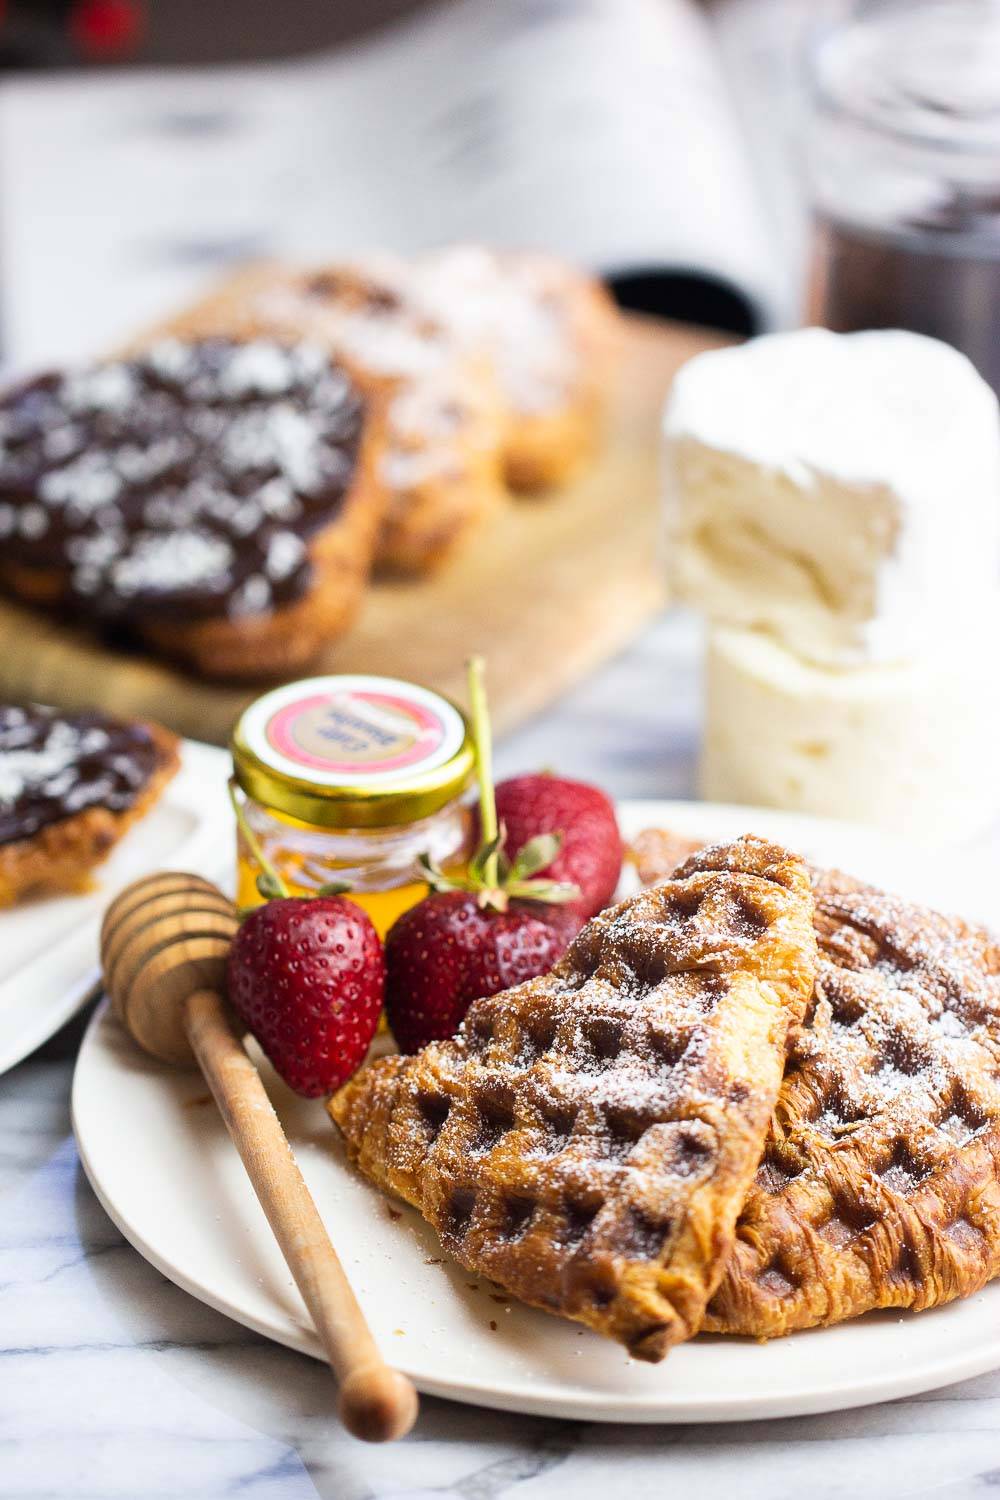 Do you like croissants? Do you like waffles? Then you need these easy croissant waffles. This croissant sandwich takes leftover croissants 10 times better. Plus, they're freezer-friendly, too!